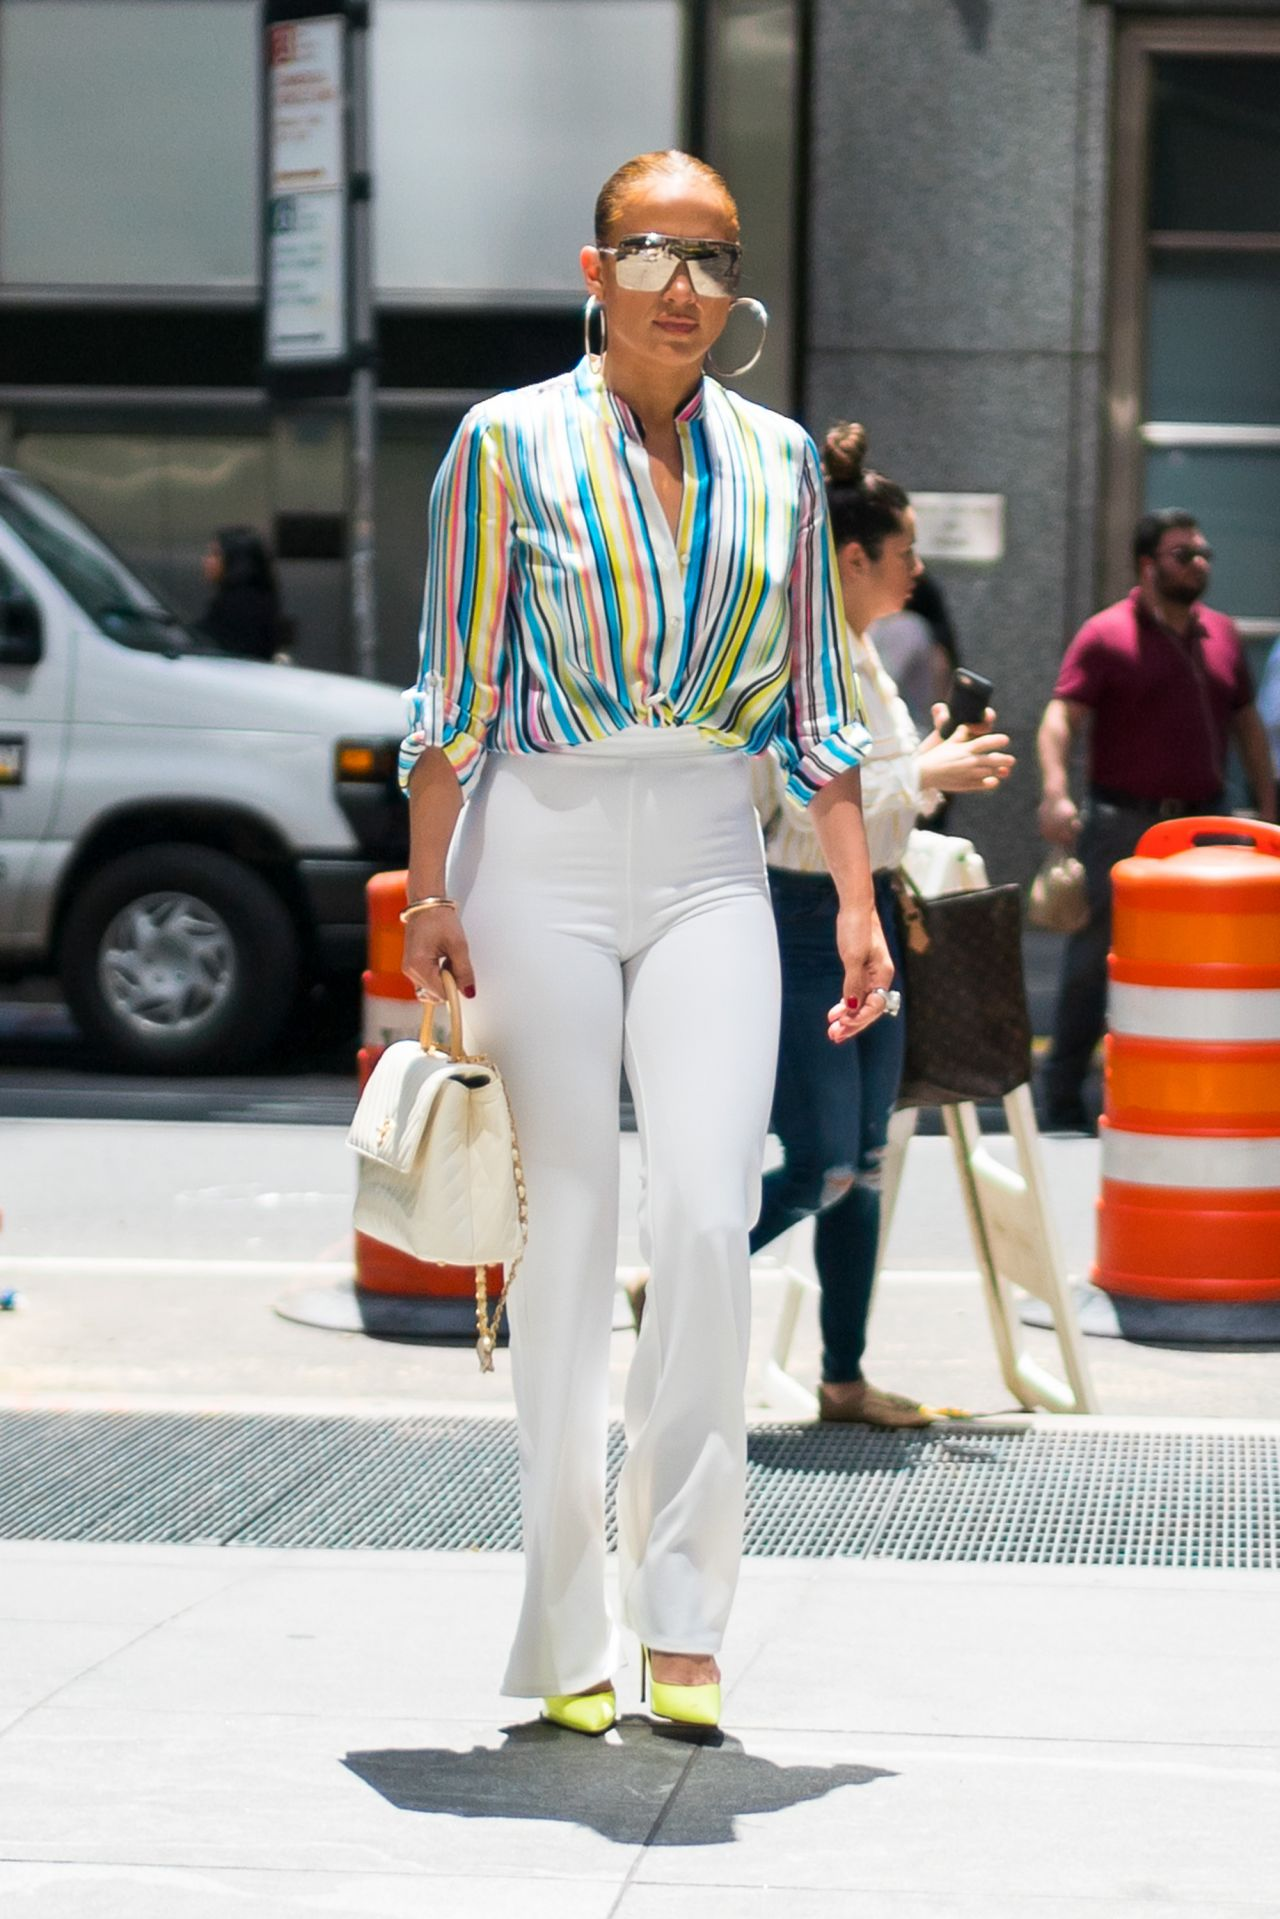 jennifer-lopez-and-alex-rodriguez-leaving-the-casa-lever-in-nyc-06-29-2018-5.jpg